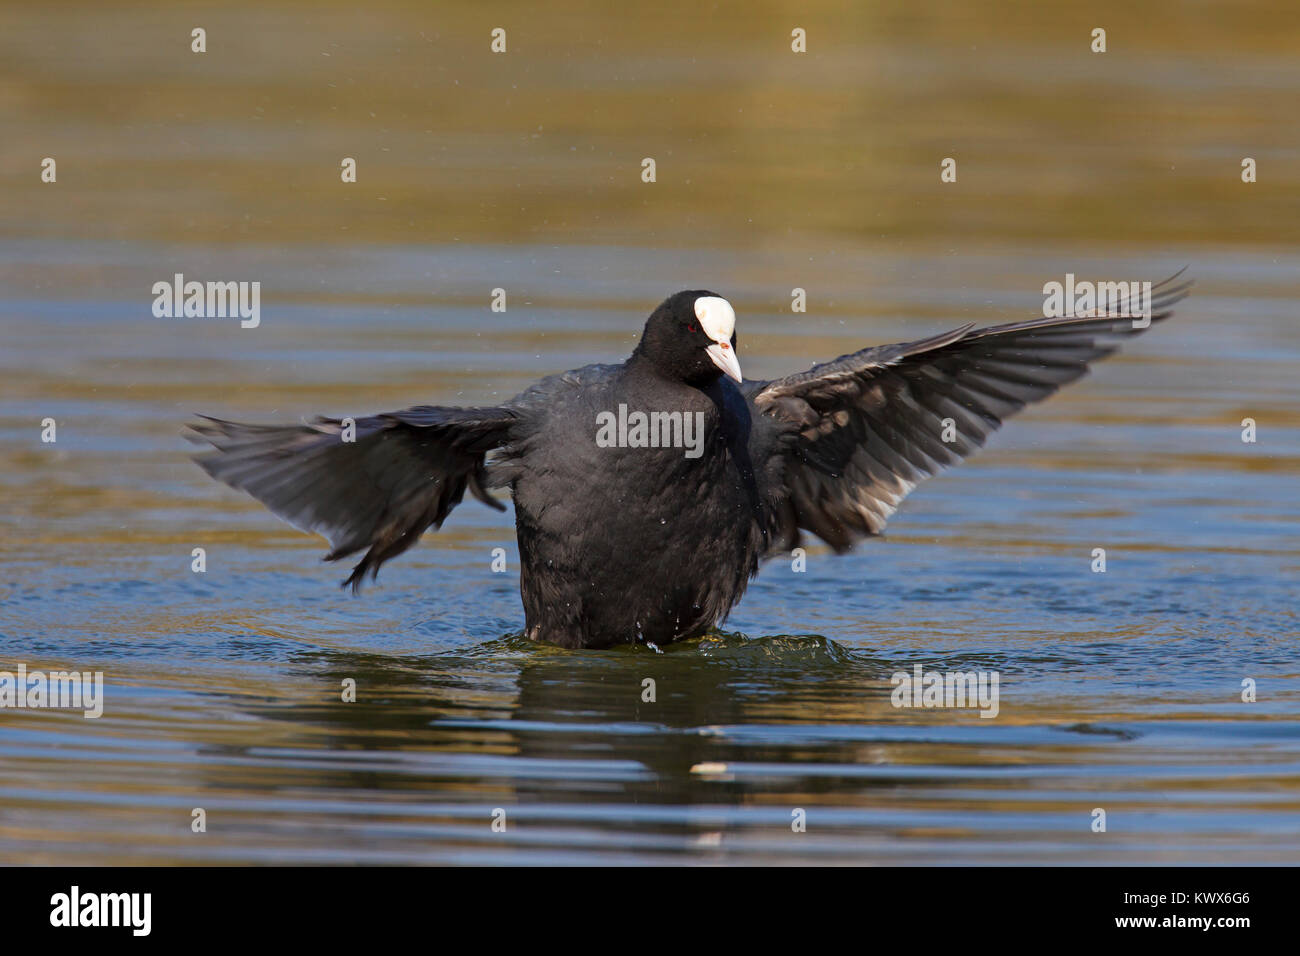 Eurasian coot (Fulica atra) flapping wings in pond - Stock Image